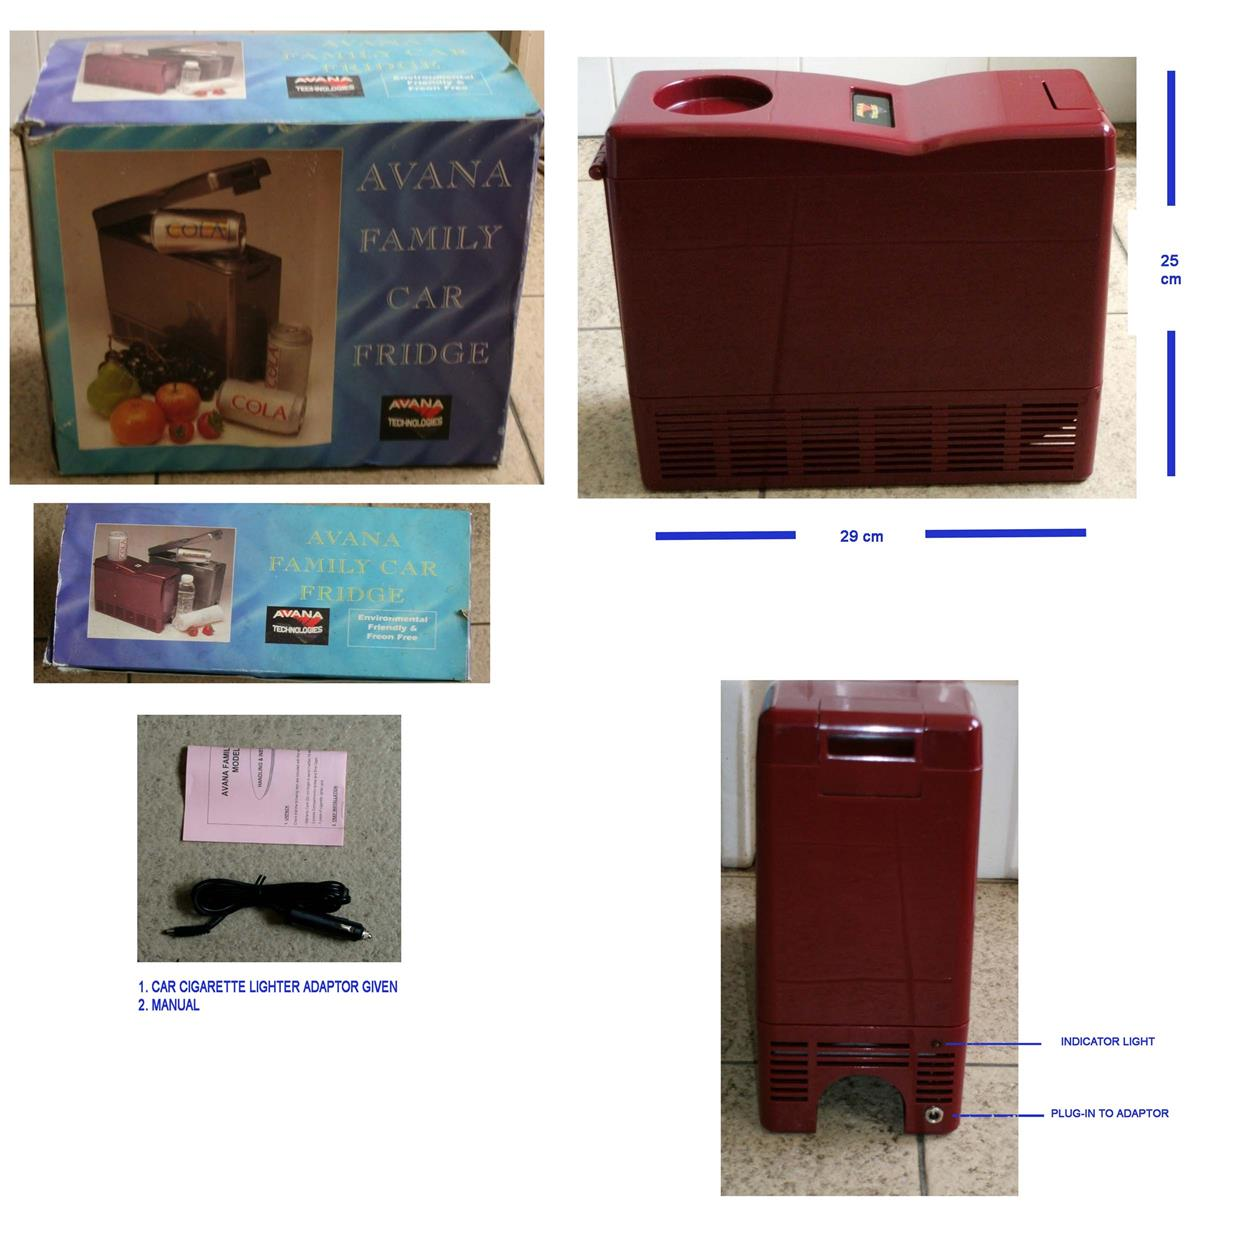 Avana Family Car Fridge  Buy or Barter available for this item